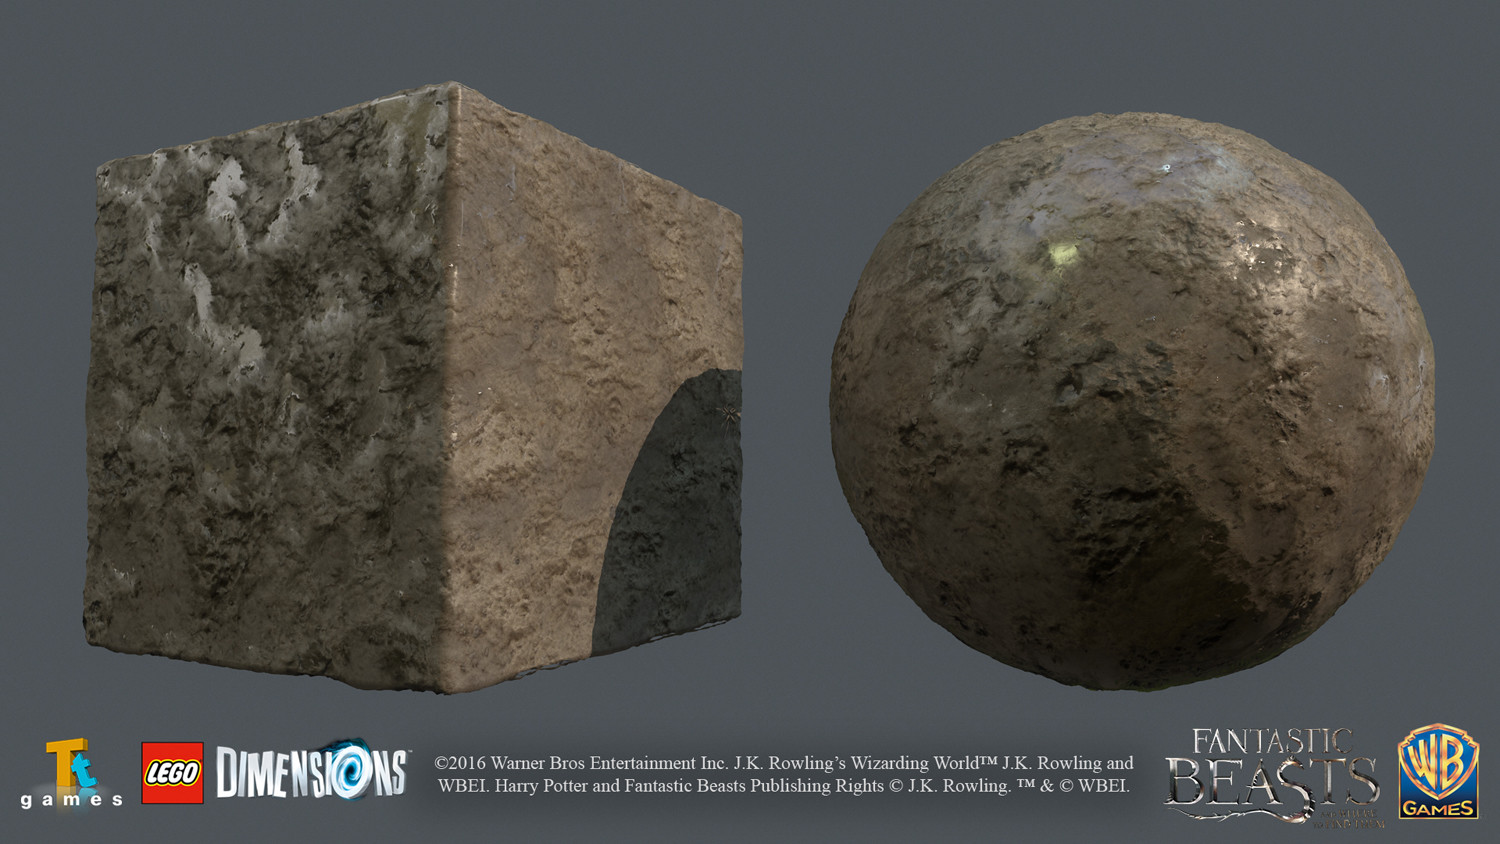 Wet sand - Mix of Substance Painter, Photoshop and photosource